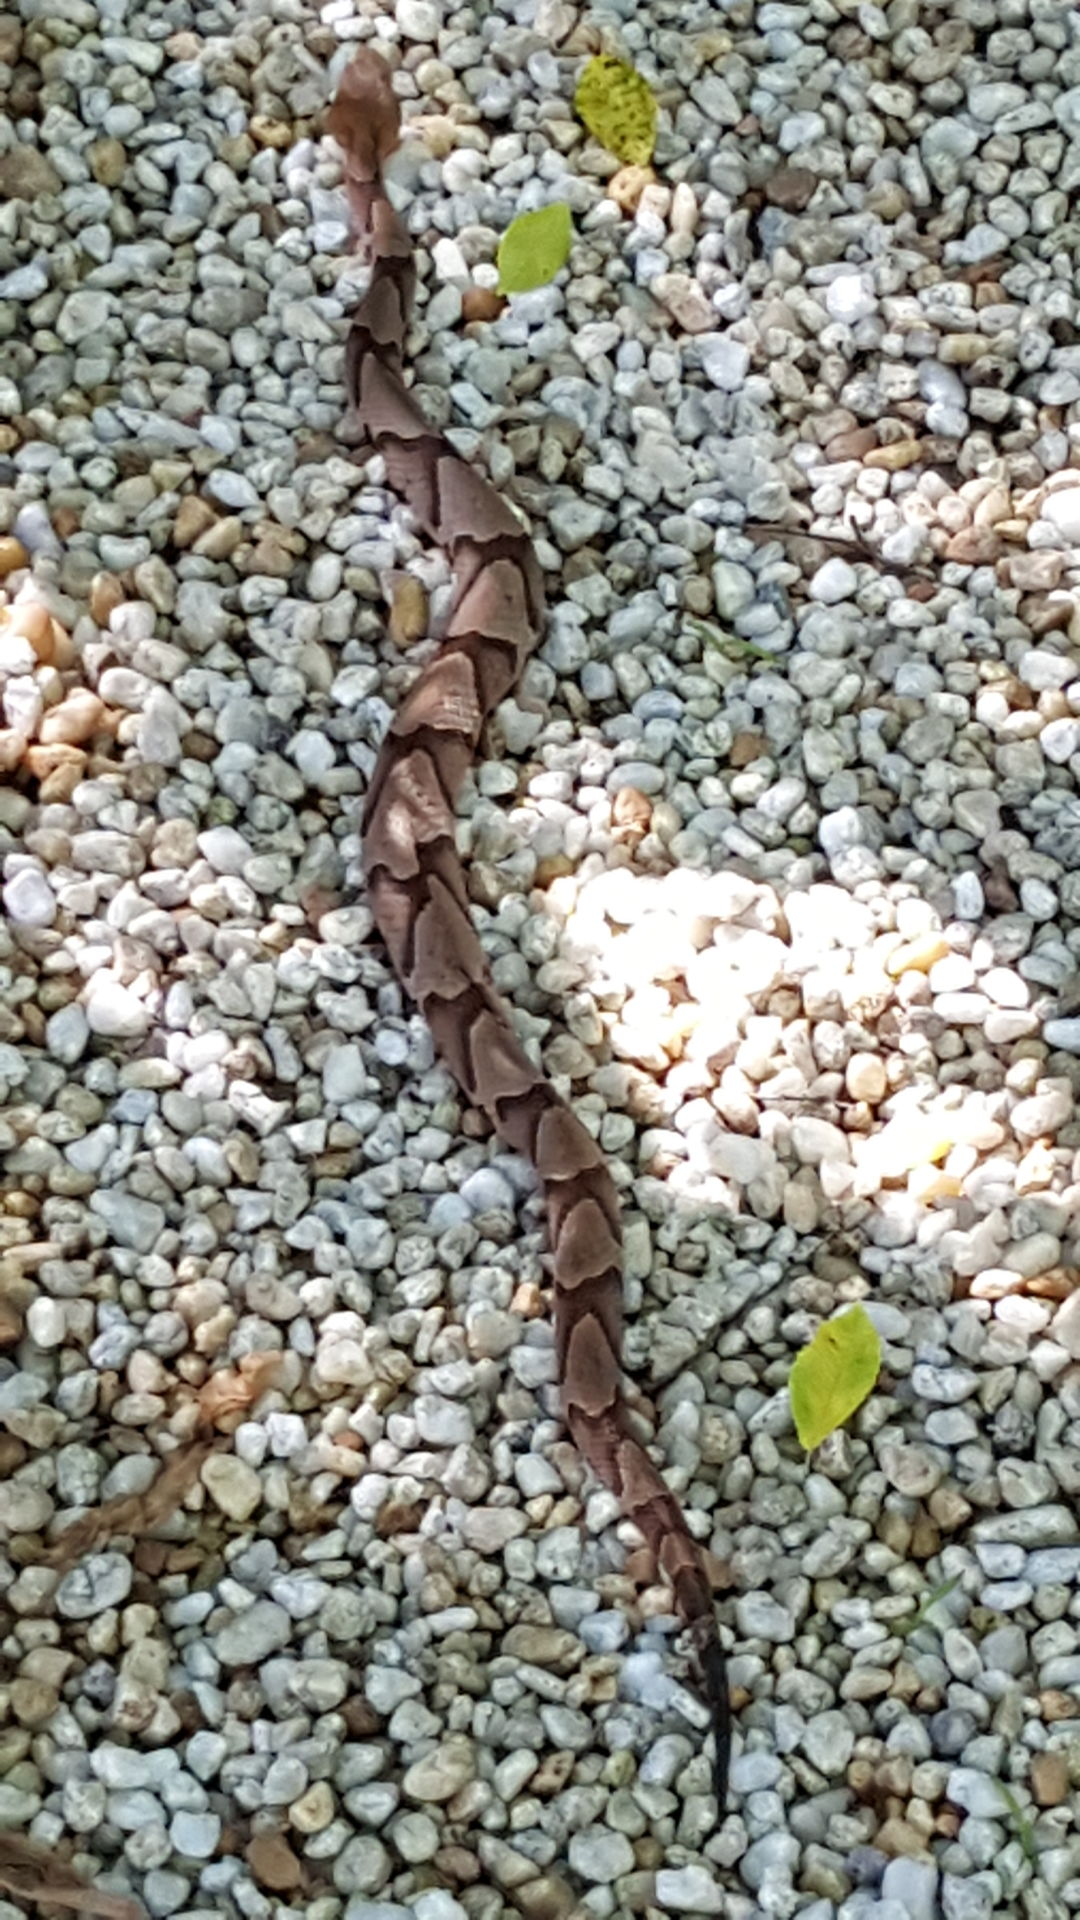 south carolina venomous snakes biting at record pace news